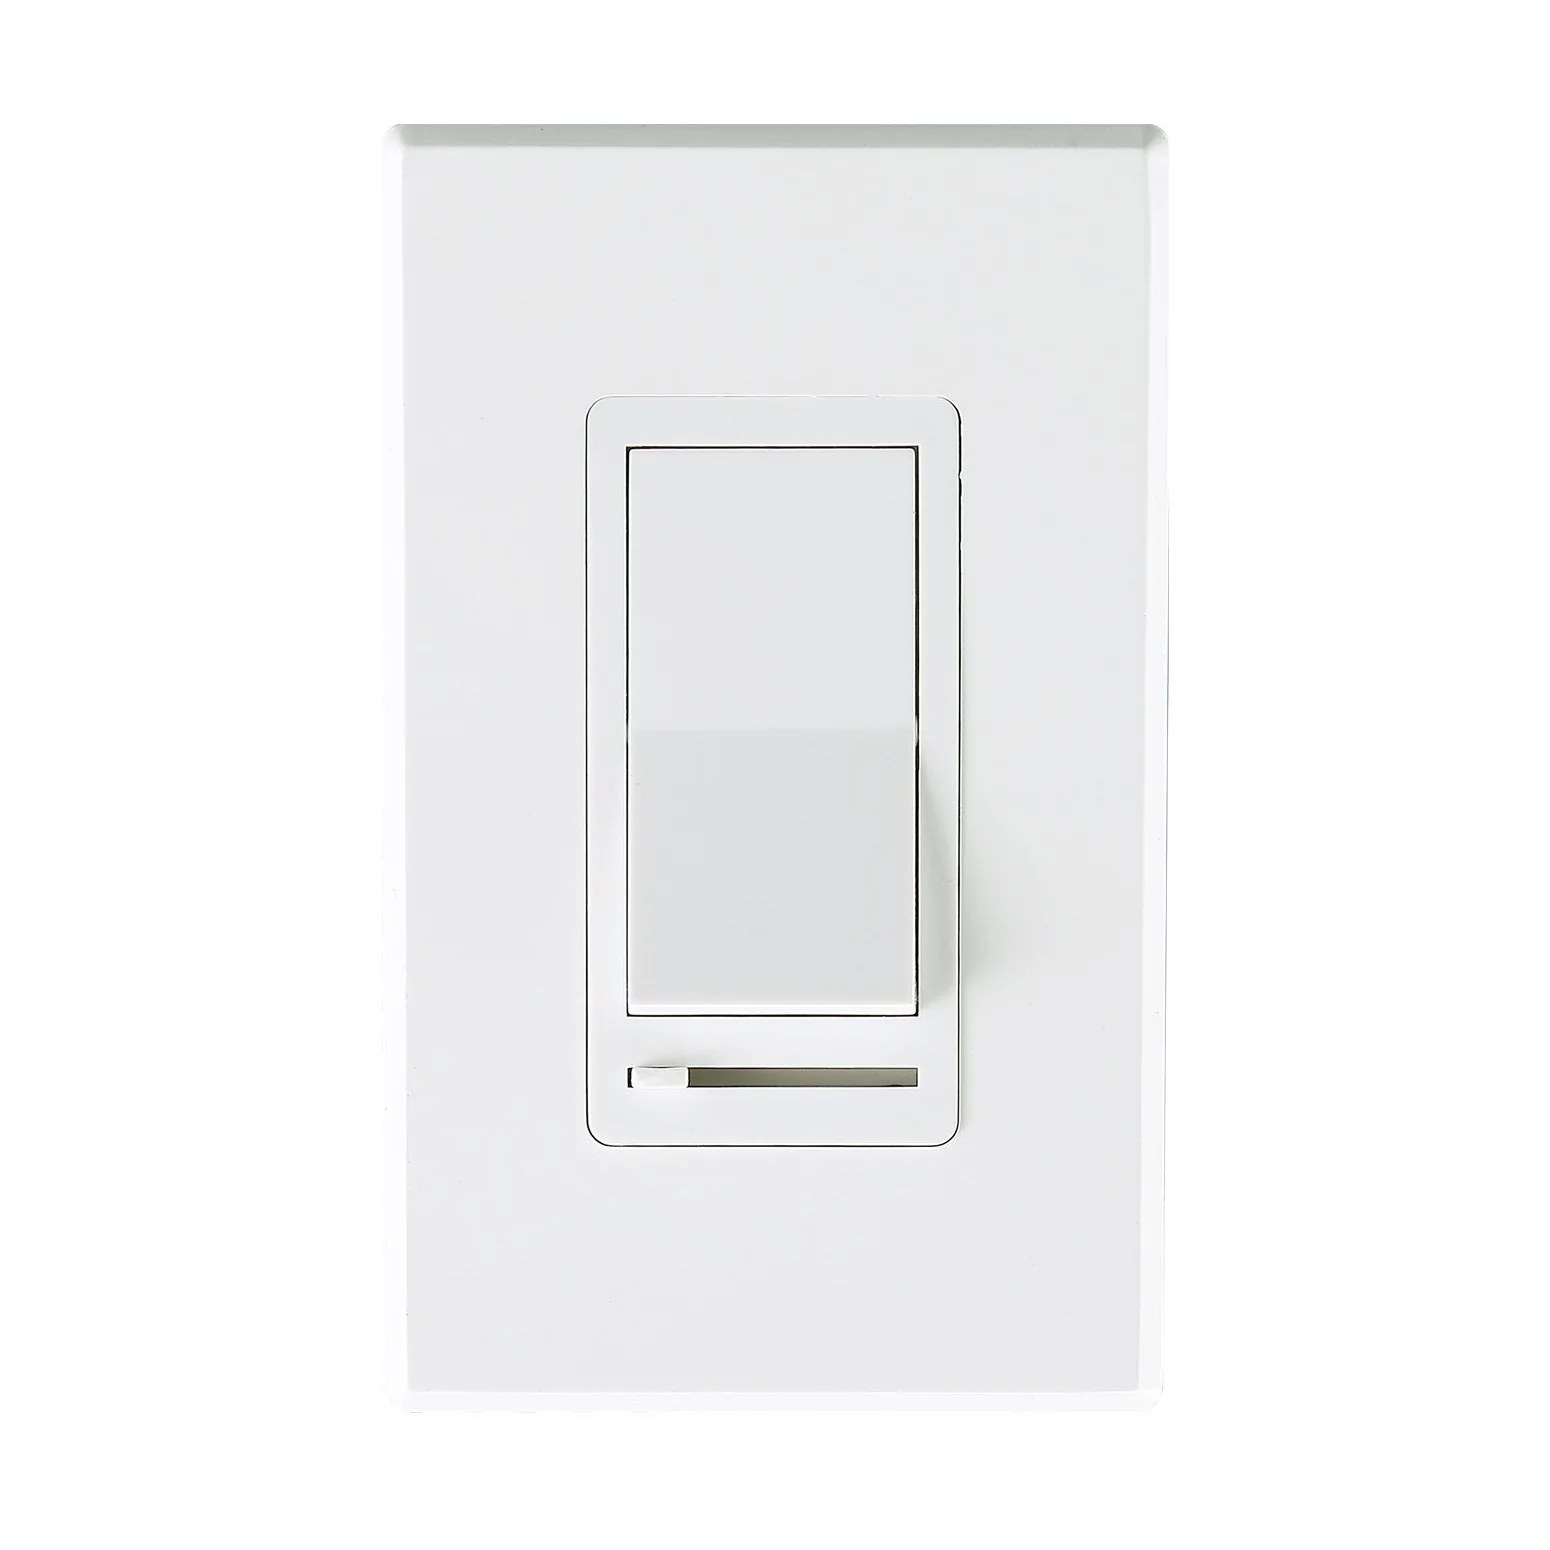 medium resolution of cloudybay in wall dimmer switch for led light cfl incandescent 3 way title